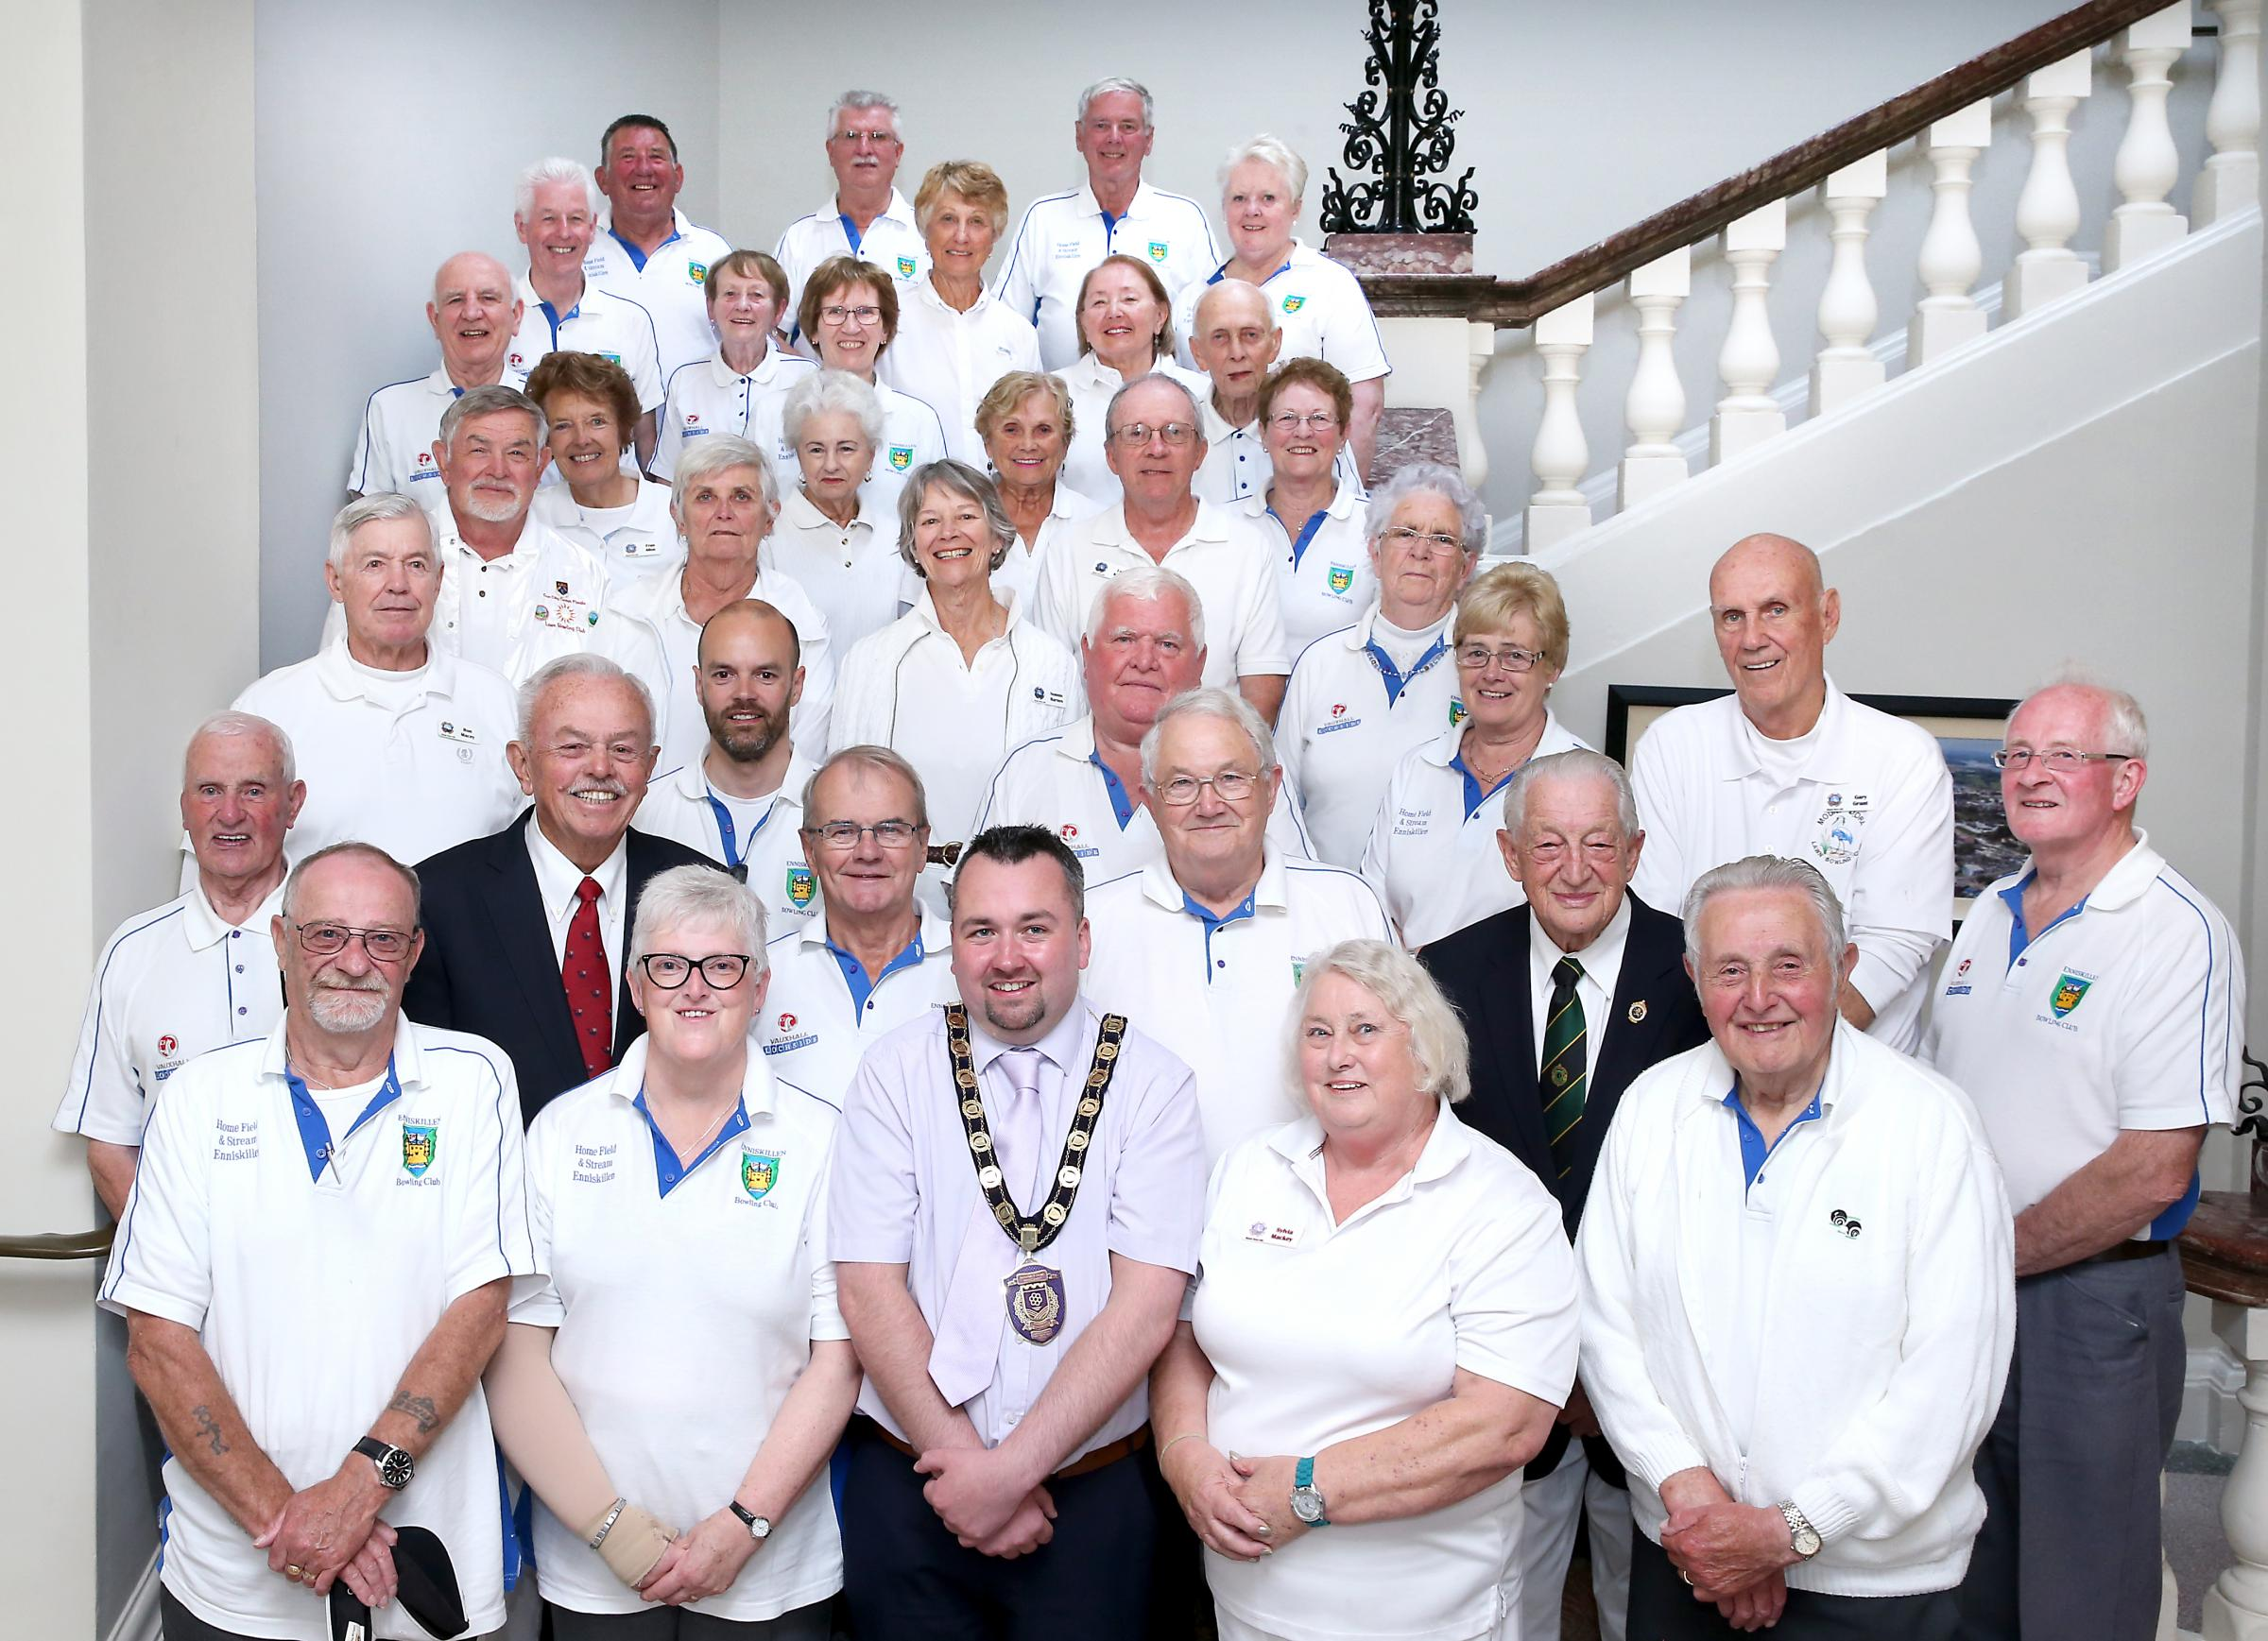 Stephen McCann, Chairman of Fermanagh and Omagh District Council with the Florida Bowling Team and Enniskillen Bowling Club members at a recent Townhall Reception.